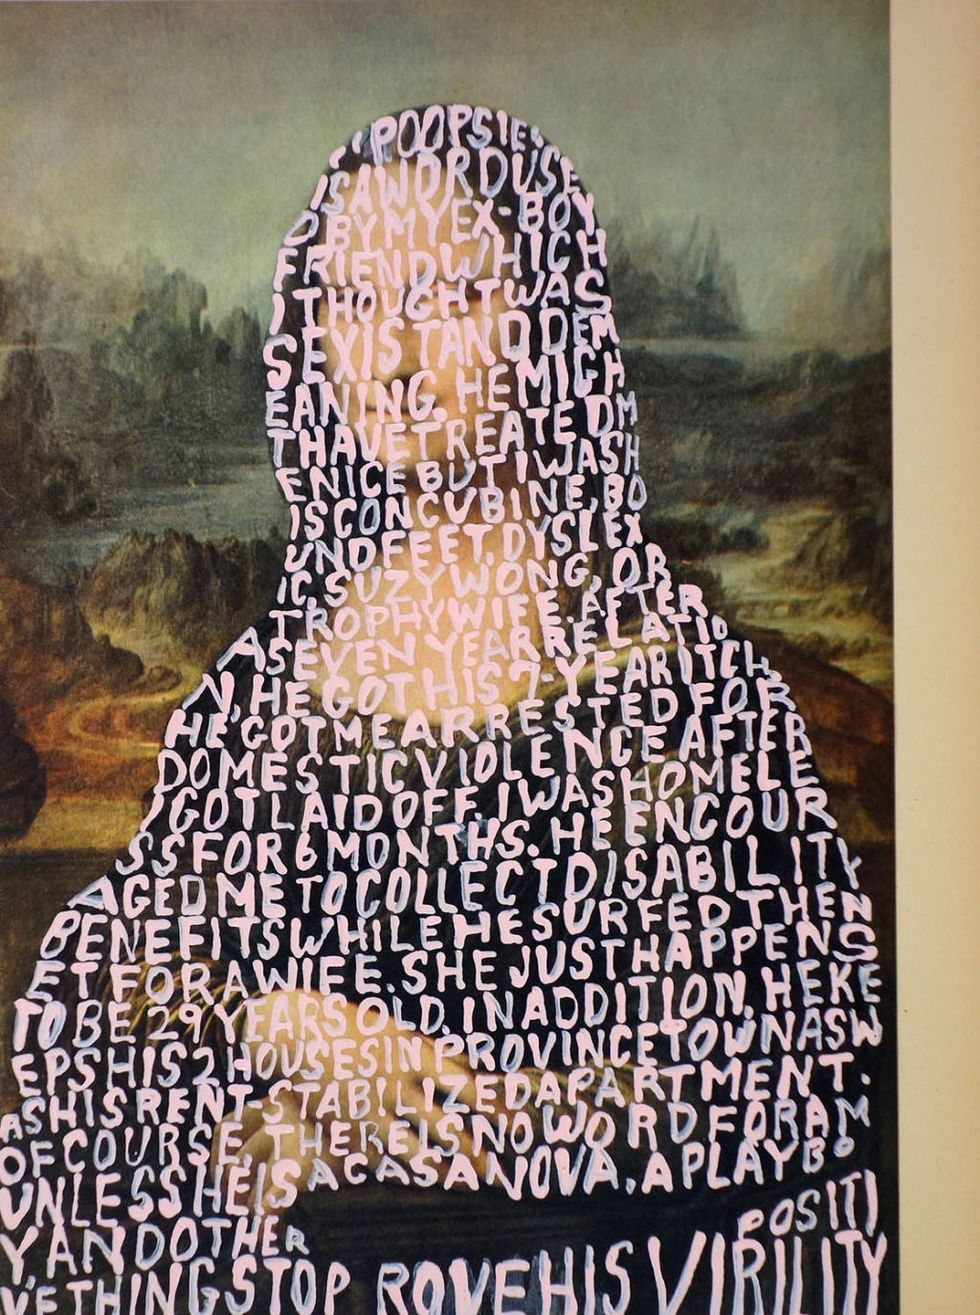 WOMEN WORDS #51 (DAVINCI) BY BETTY TOMPKINS  / COURTESY OF THE ARTIST AND P•P•O•W, NEW YORK